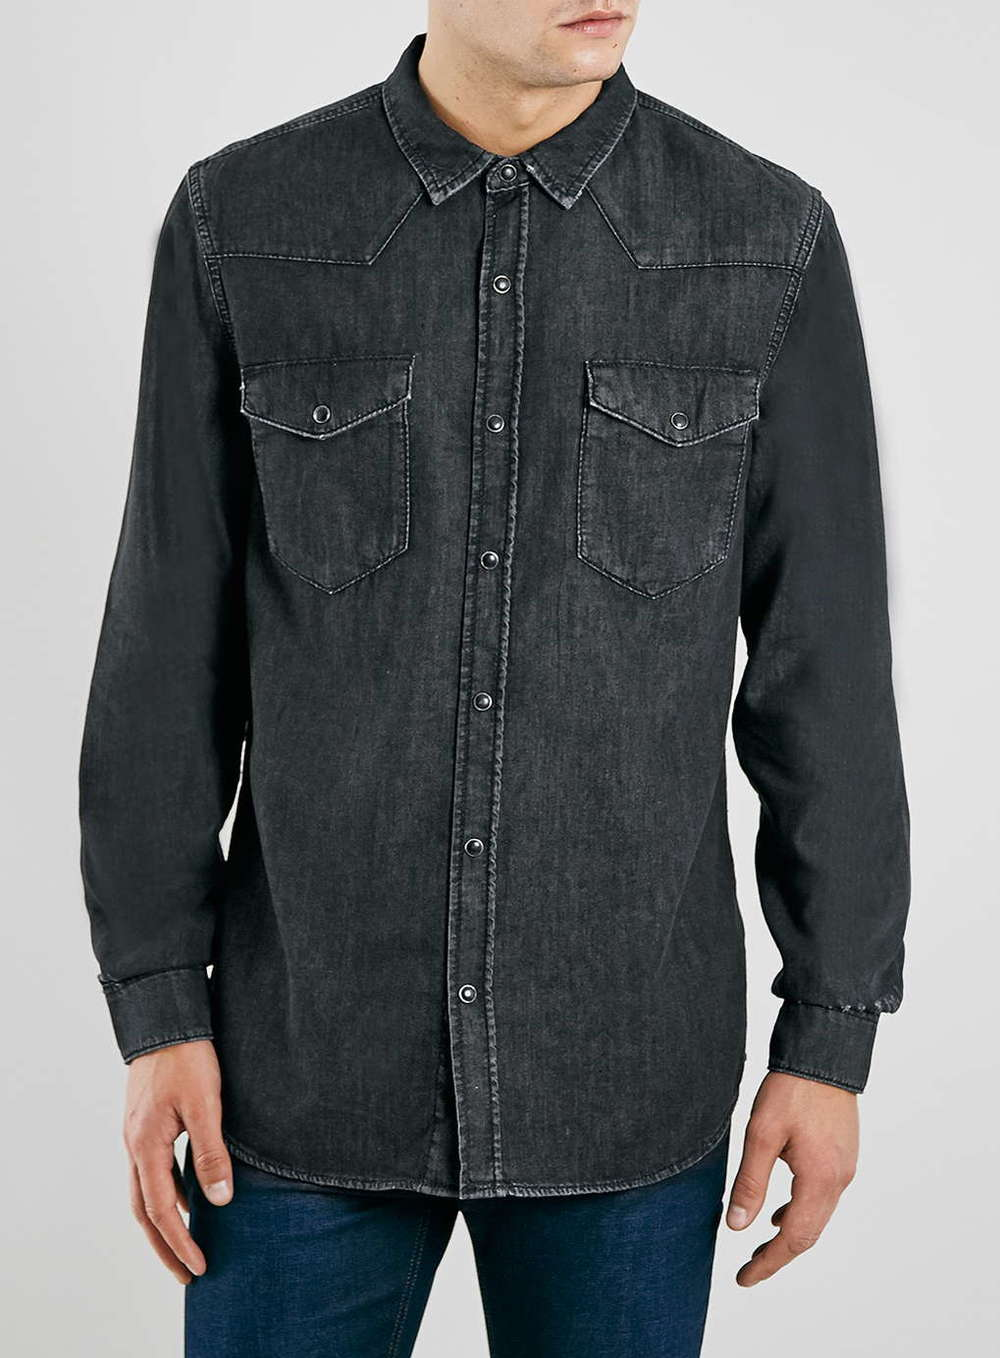 Topman Black Denim Shirt